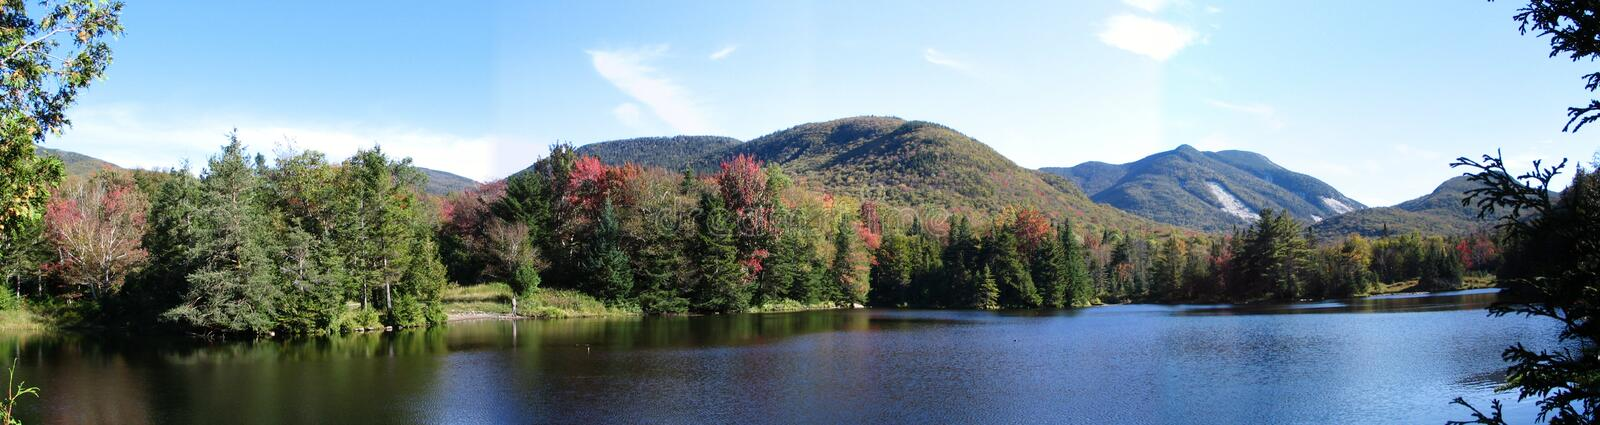 Backcountry Wilderness Pond stock image